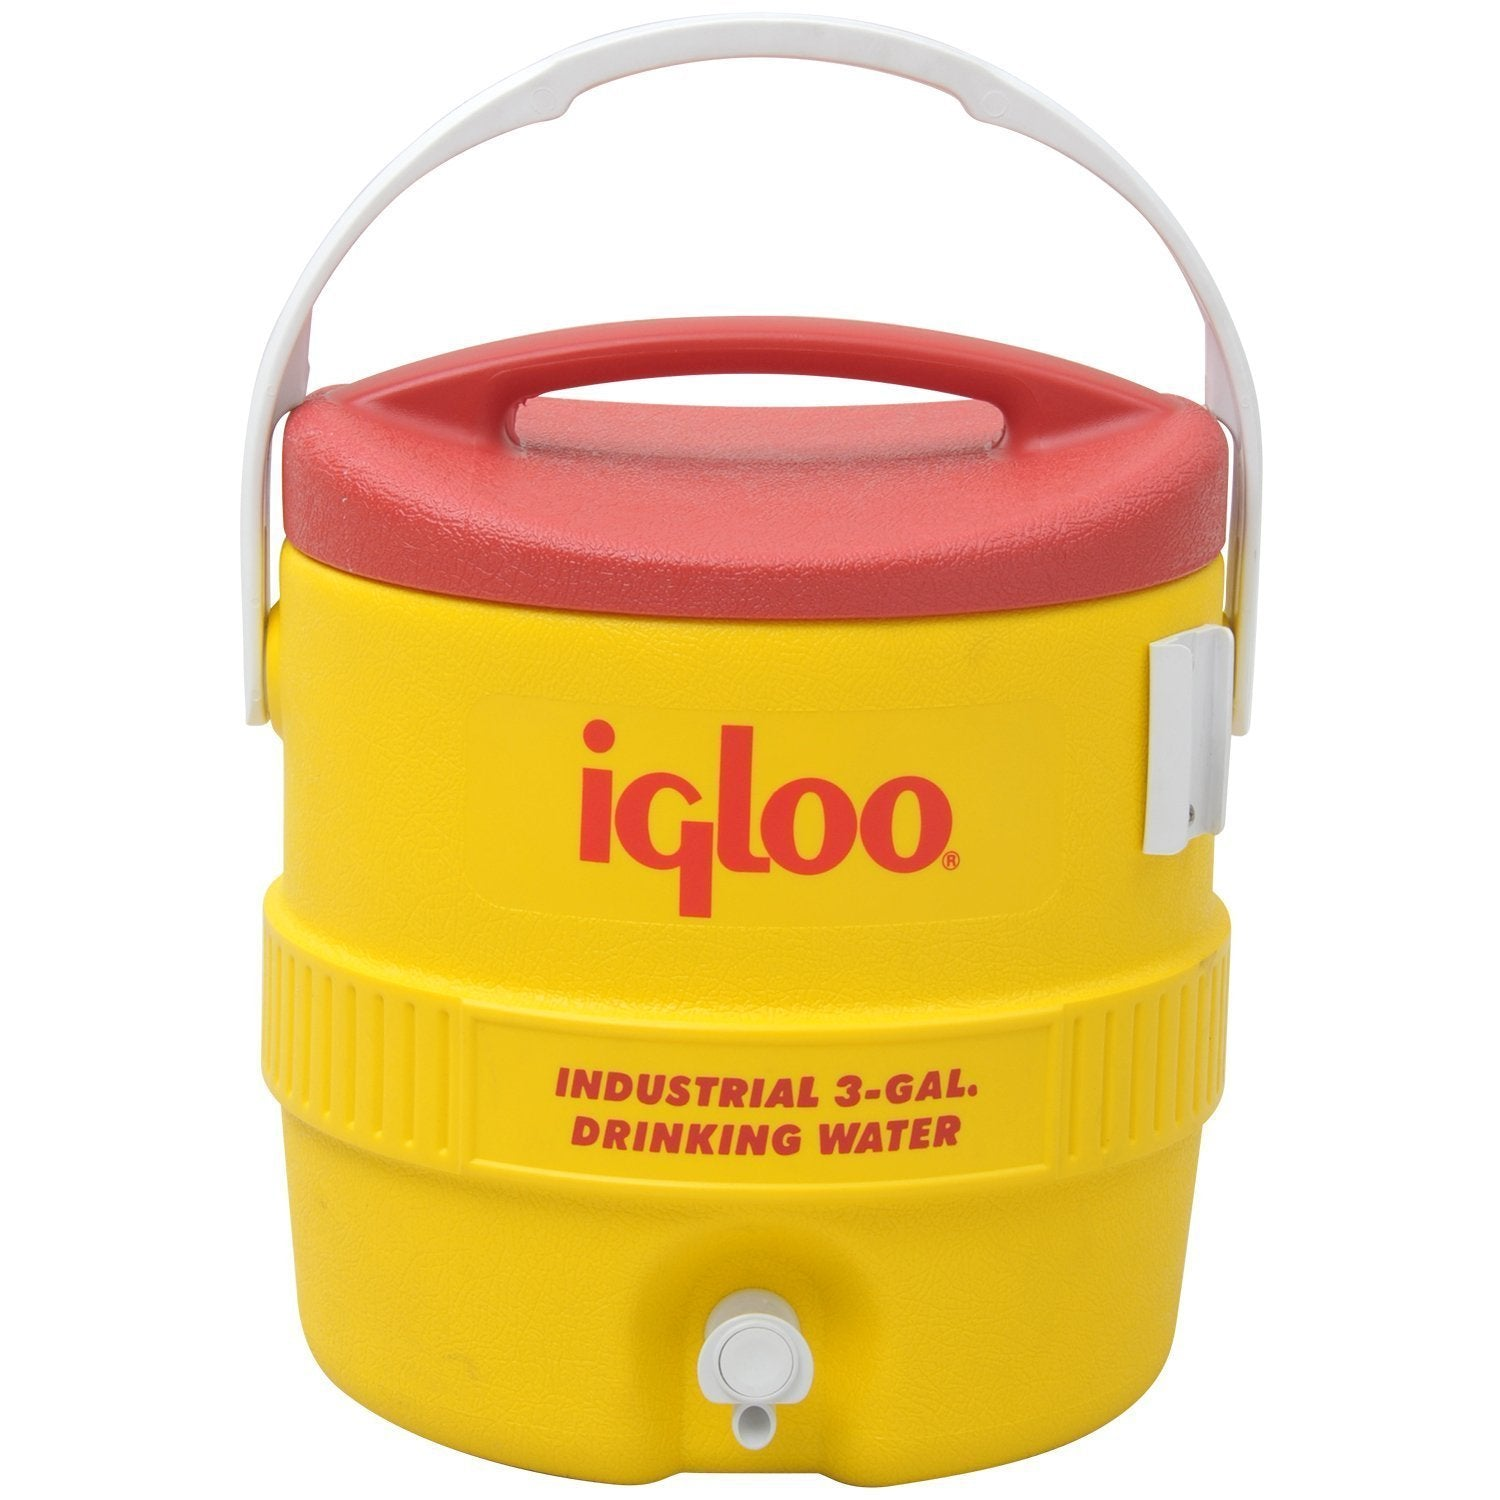 Igloo Industrial Water Cooler 3Gal